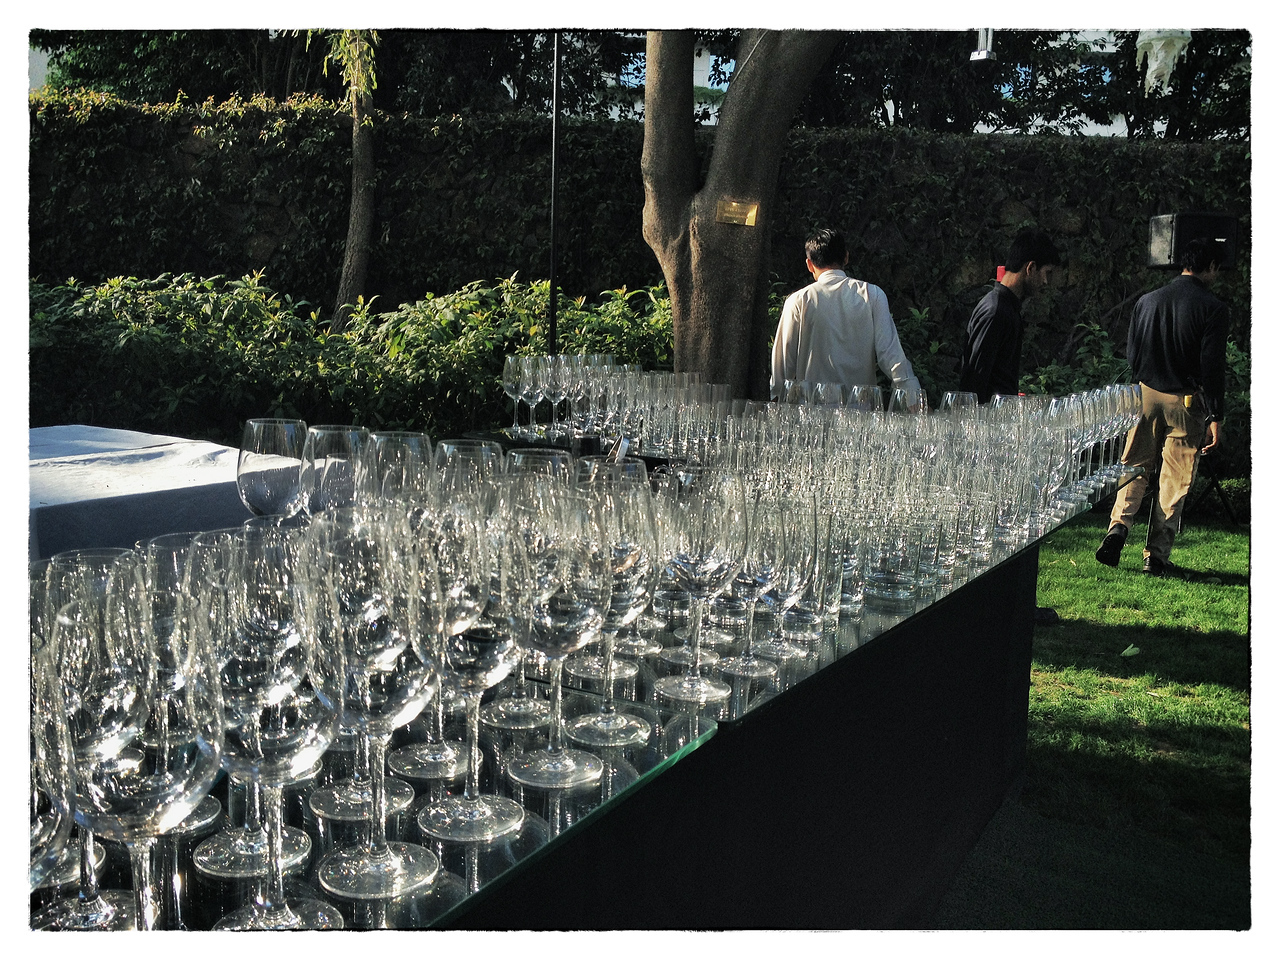 Delhi, India, Feb 2013 -    Staff prepare for a party  at Trident hotel in Gurgaon where the water is scarce.   Images for the Global Post's special report -   The Great Divide:  Global income inequality and its cost    Photograph:  Sami SIVA